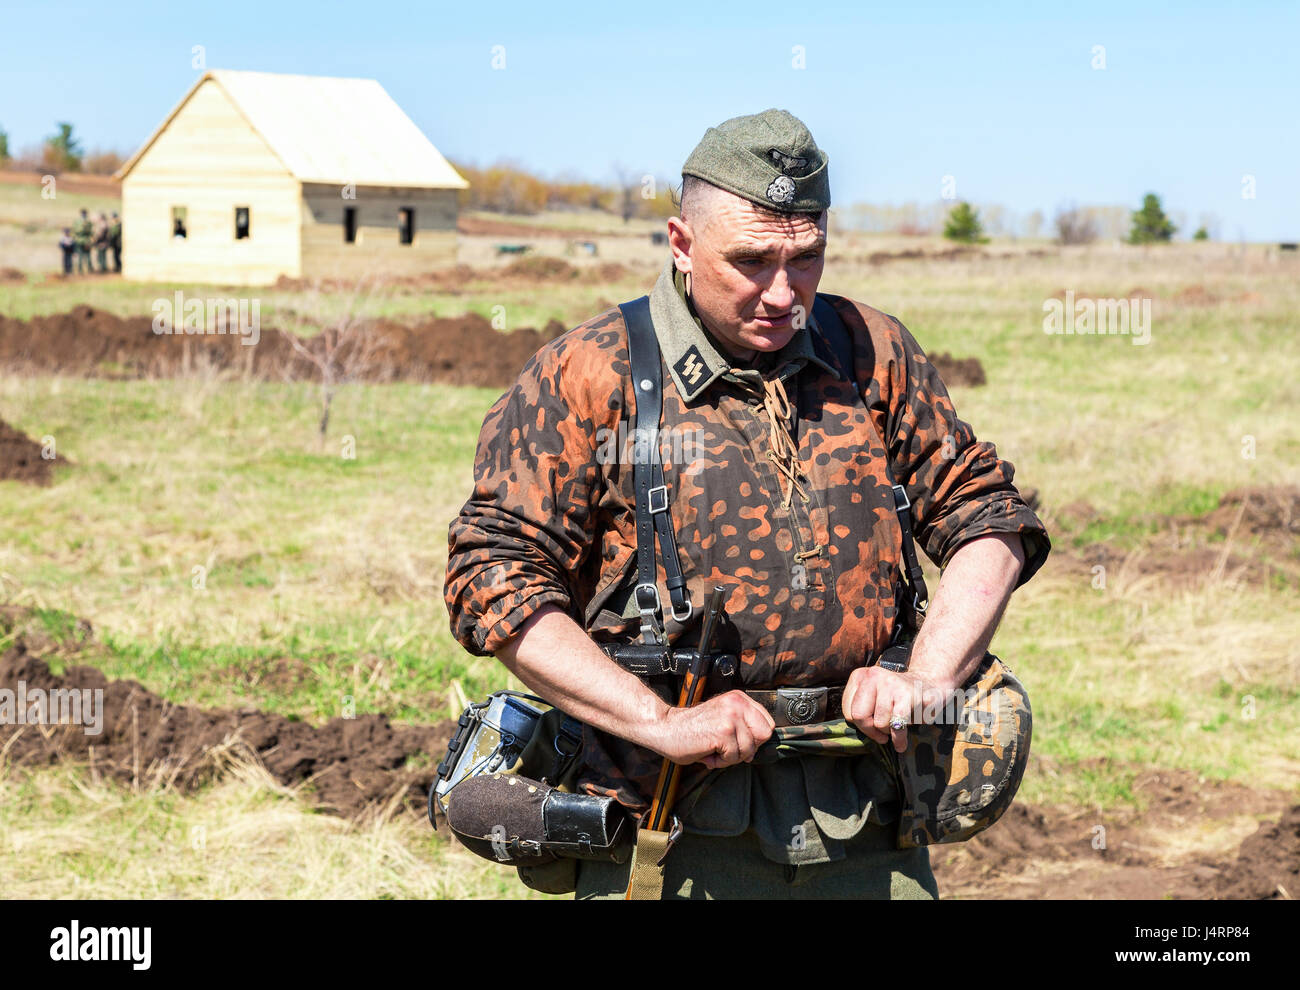 Samara, Russia - April 30, 2017: Unidentified member of Historical reenactment in German Army uniform during historical - Stock Image